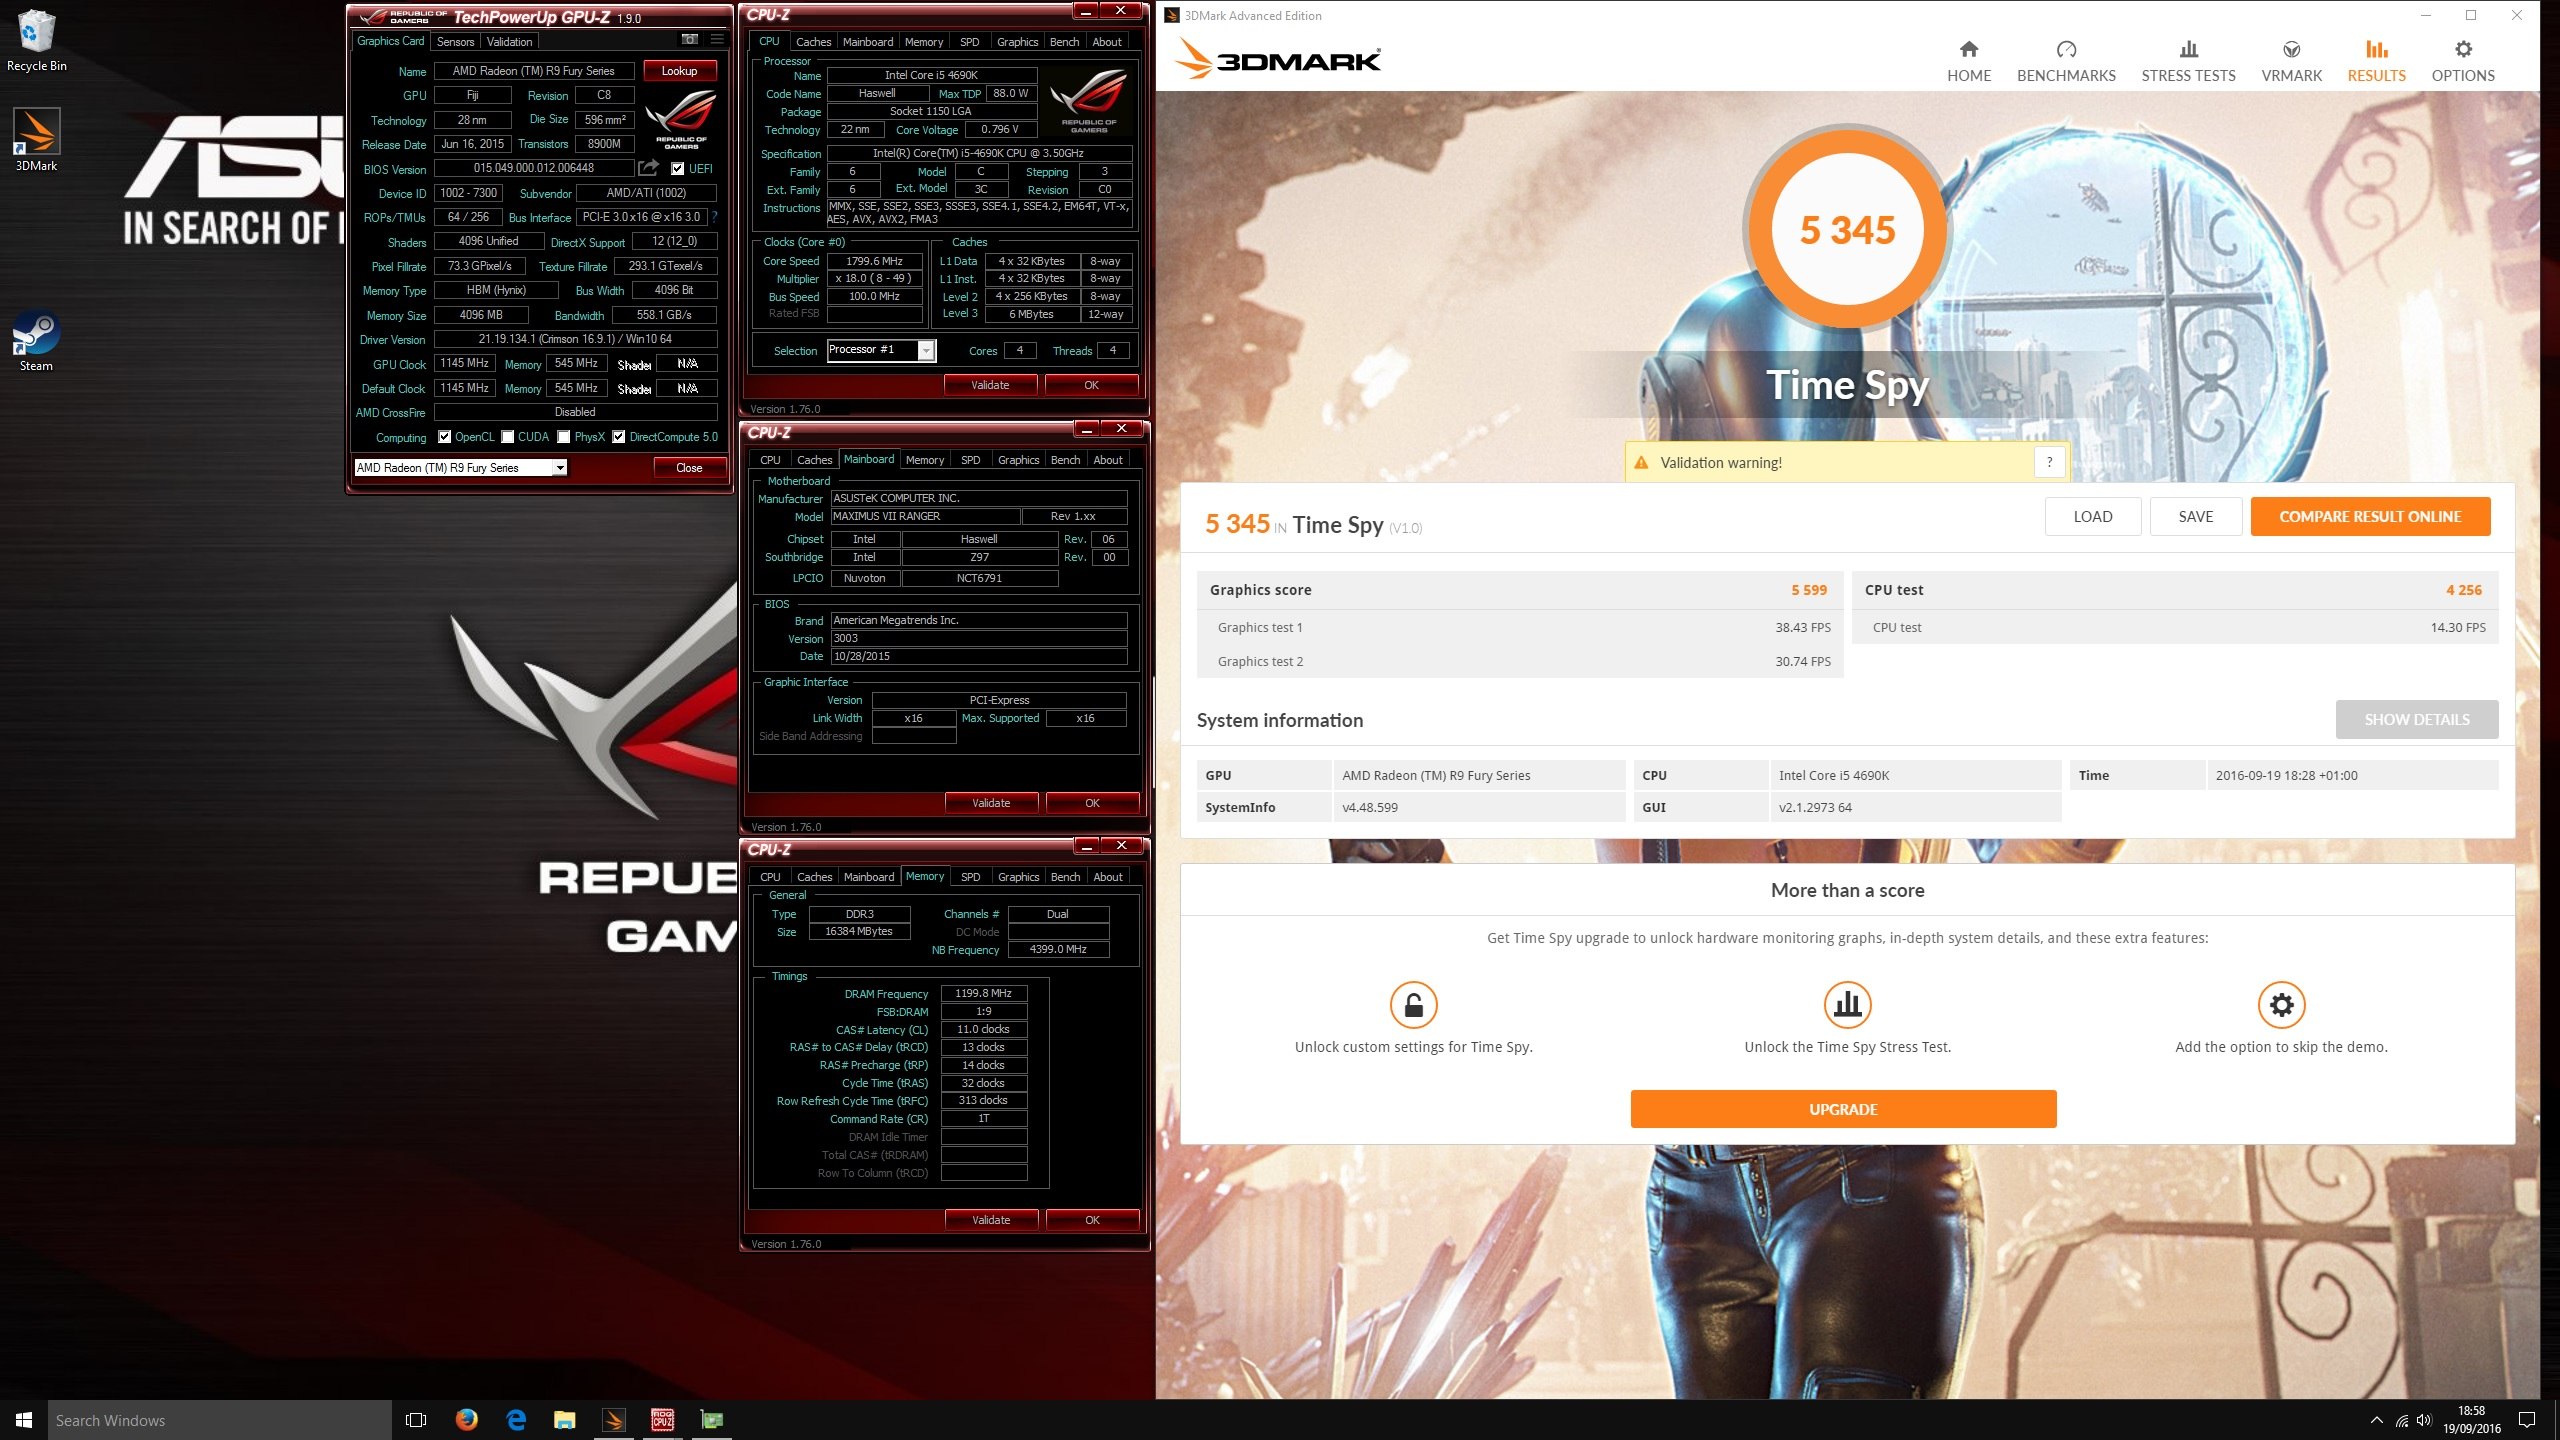 3Dmark Time Spy - Post your scores! | Page 6 | TechPowerUp